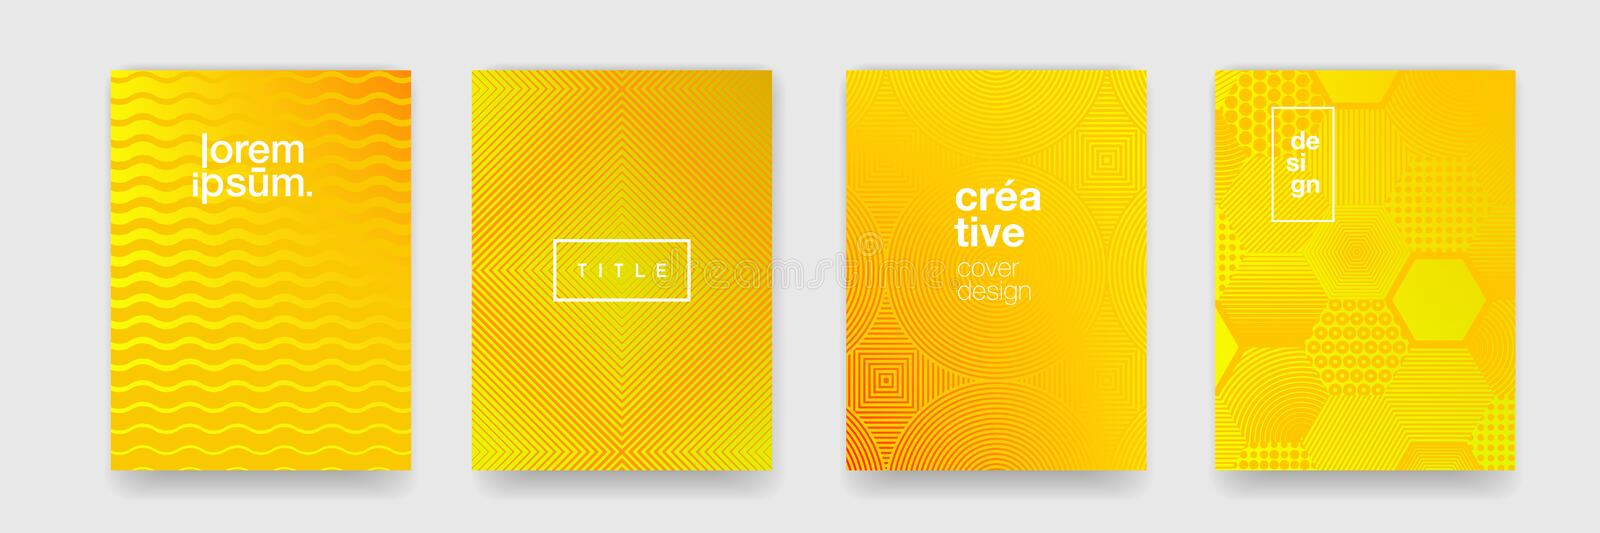 Abstract patterns, geometric shape trend vector background. Modern yellow color gradient pattern background stock illustration